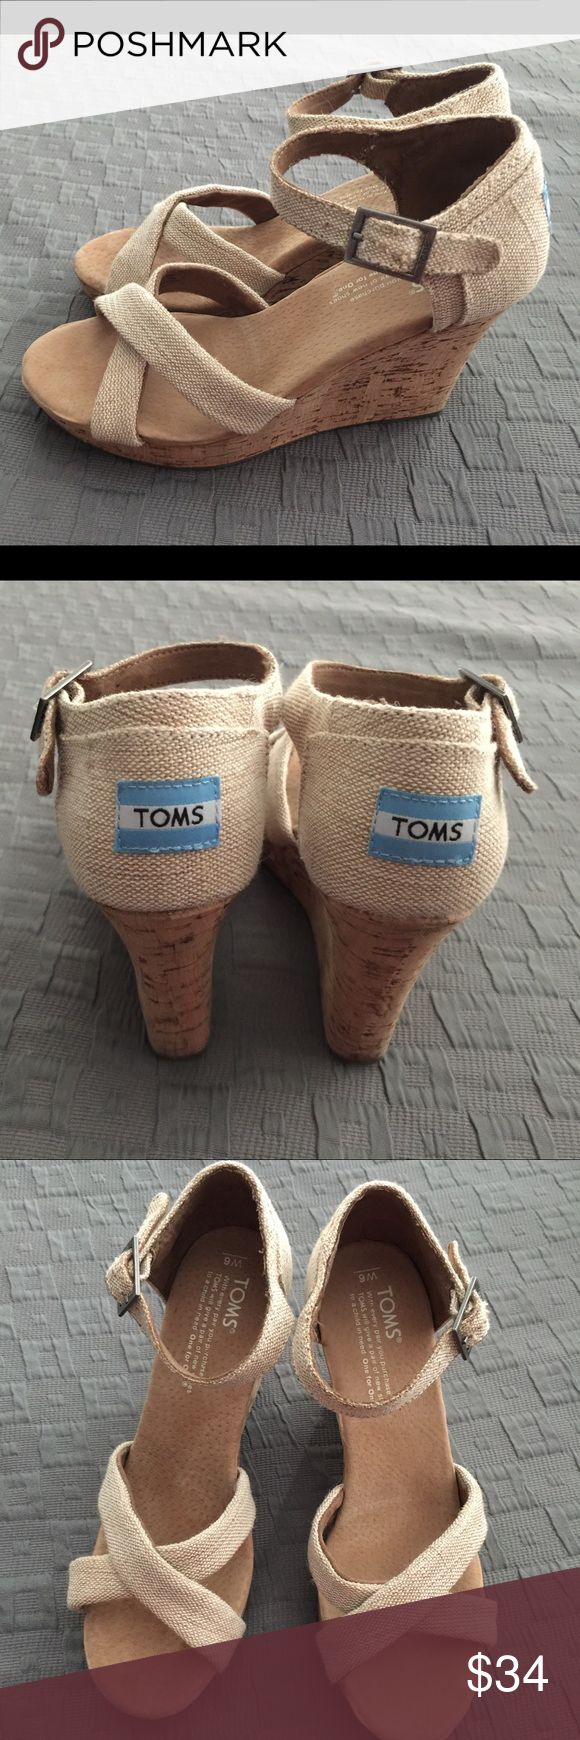 Toms Espadrilles Cork Wedge Heels Size 6 Tan Toms Espadrilles, cork wedge heel, tan with buckle strap. Size 6, in like new, excellent condition. Smoke free home. TOMS Shoes Wedges